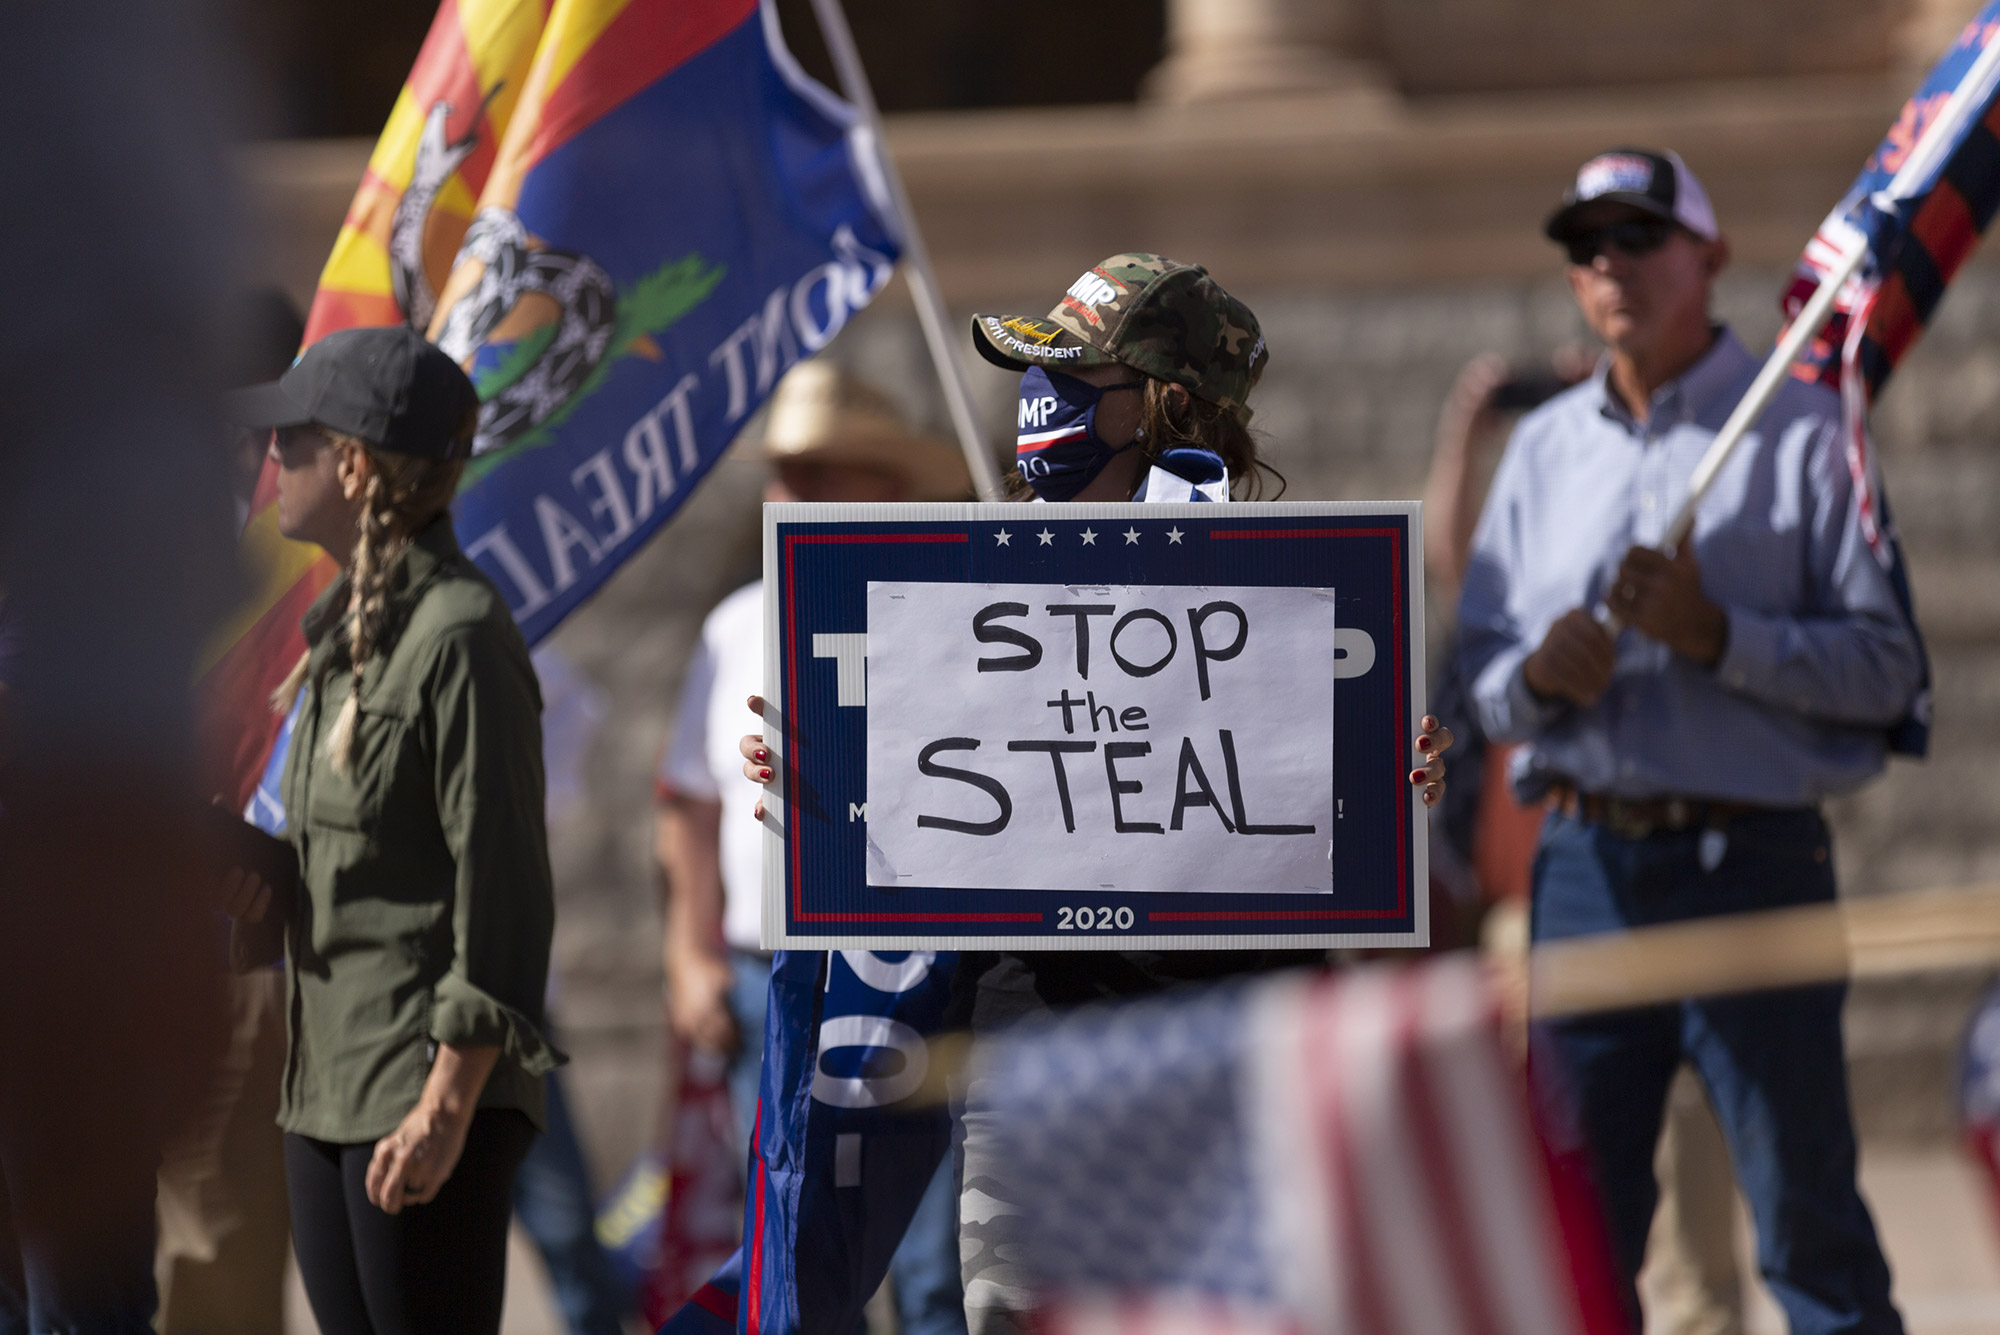 Photo of a 'Stop the Steal' in early November 2020. A group of people stand with 'don't tread on me' flags and American flags. In center foreground, a person in a camo baseball cap holds a sign with the words 'Stop the Steal'.